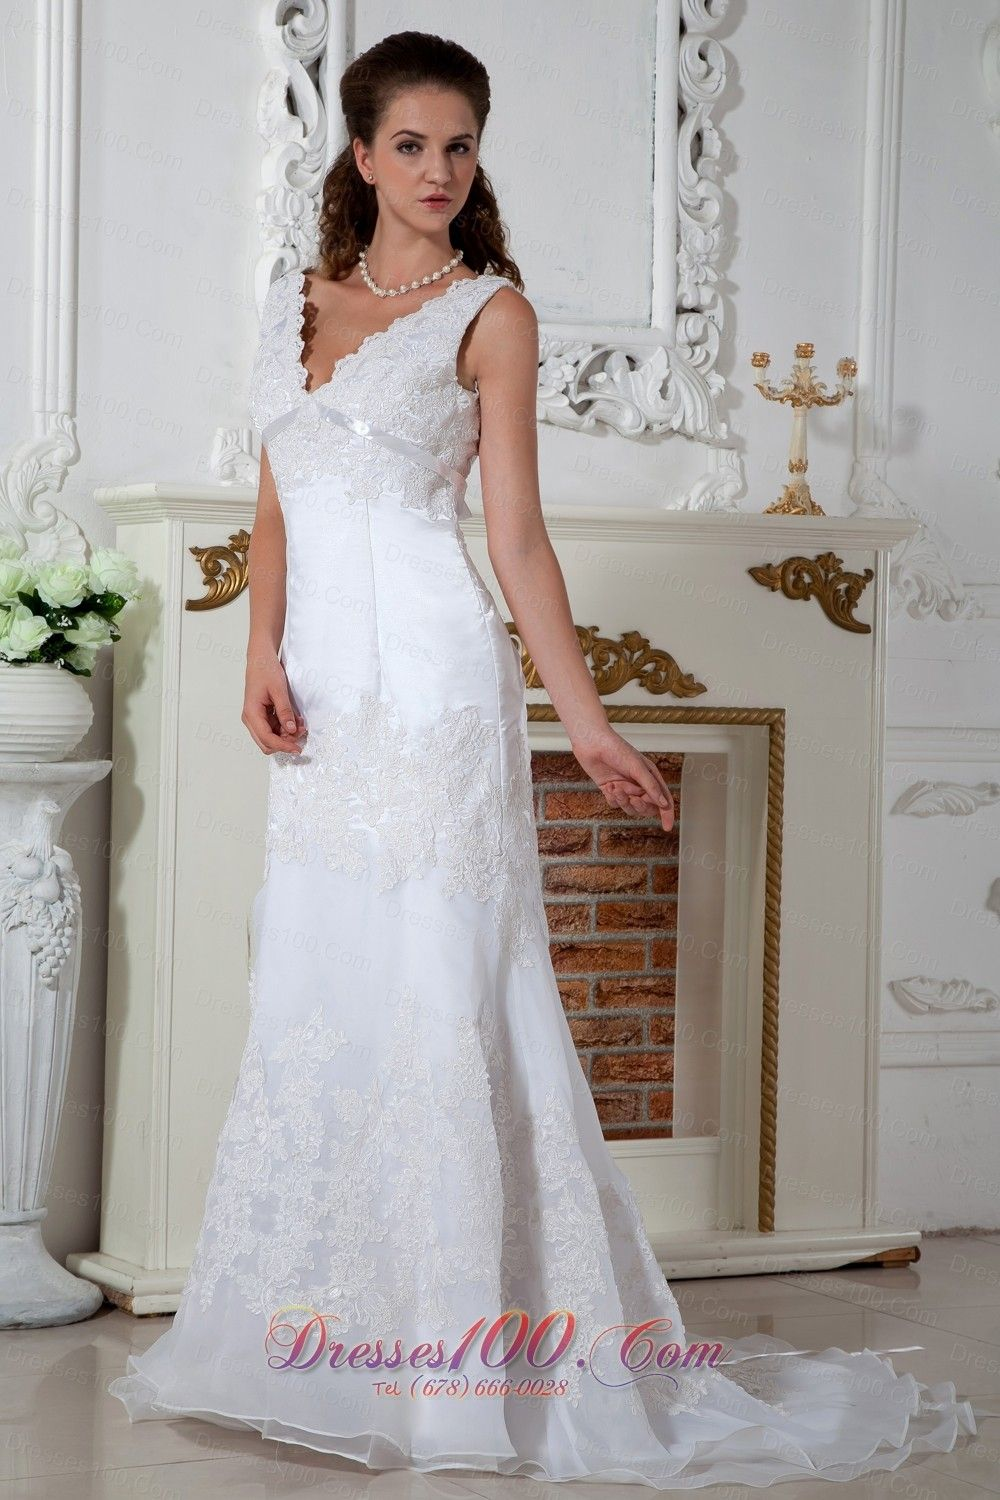 On Sale Wedding Dress In San Francisco Solano Buenos Aires Gown Bridal Bridesmaid Dresses Flower Girl Discount